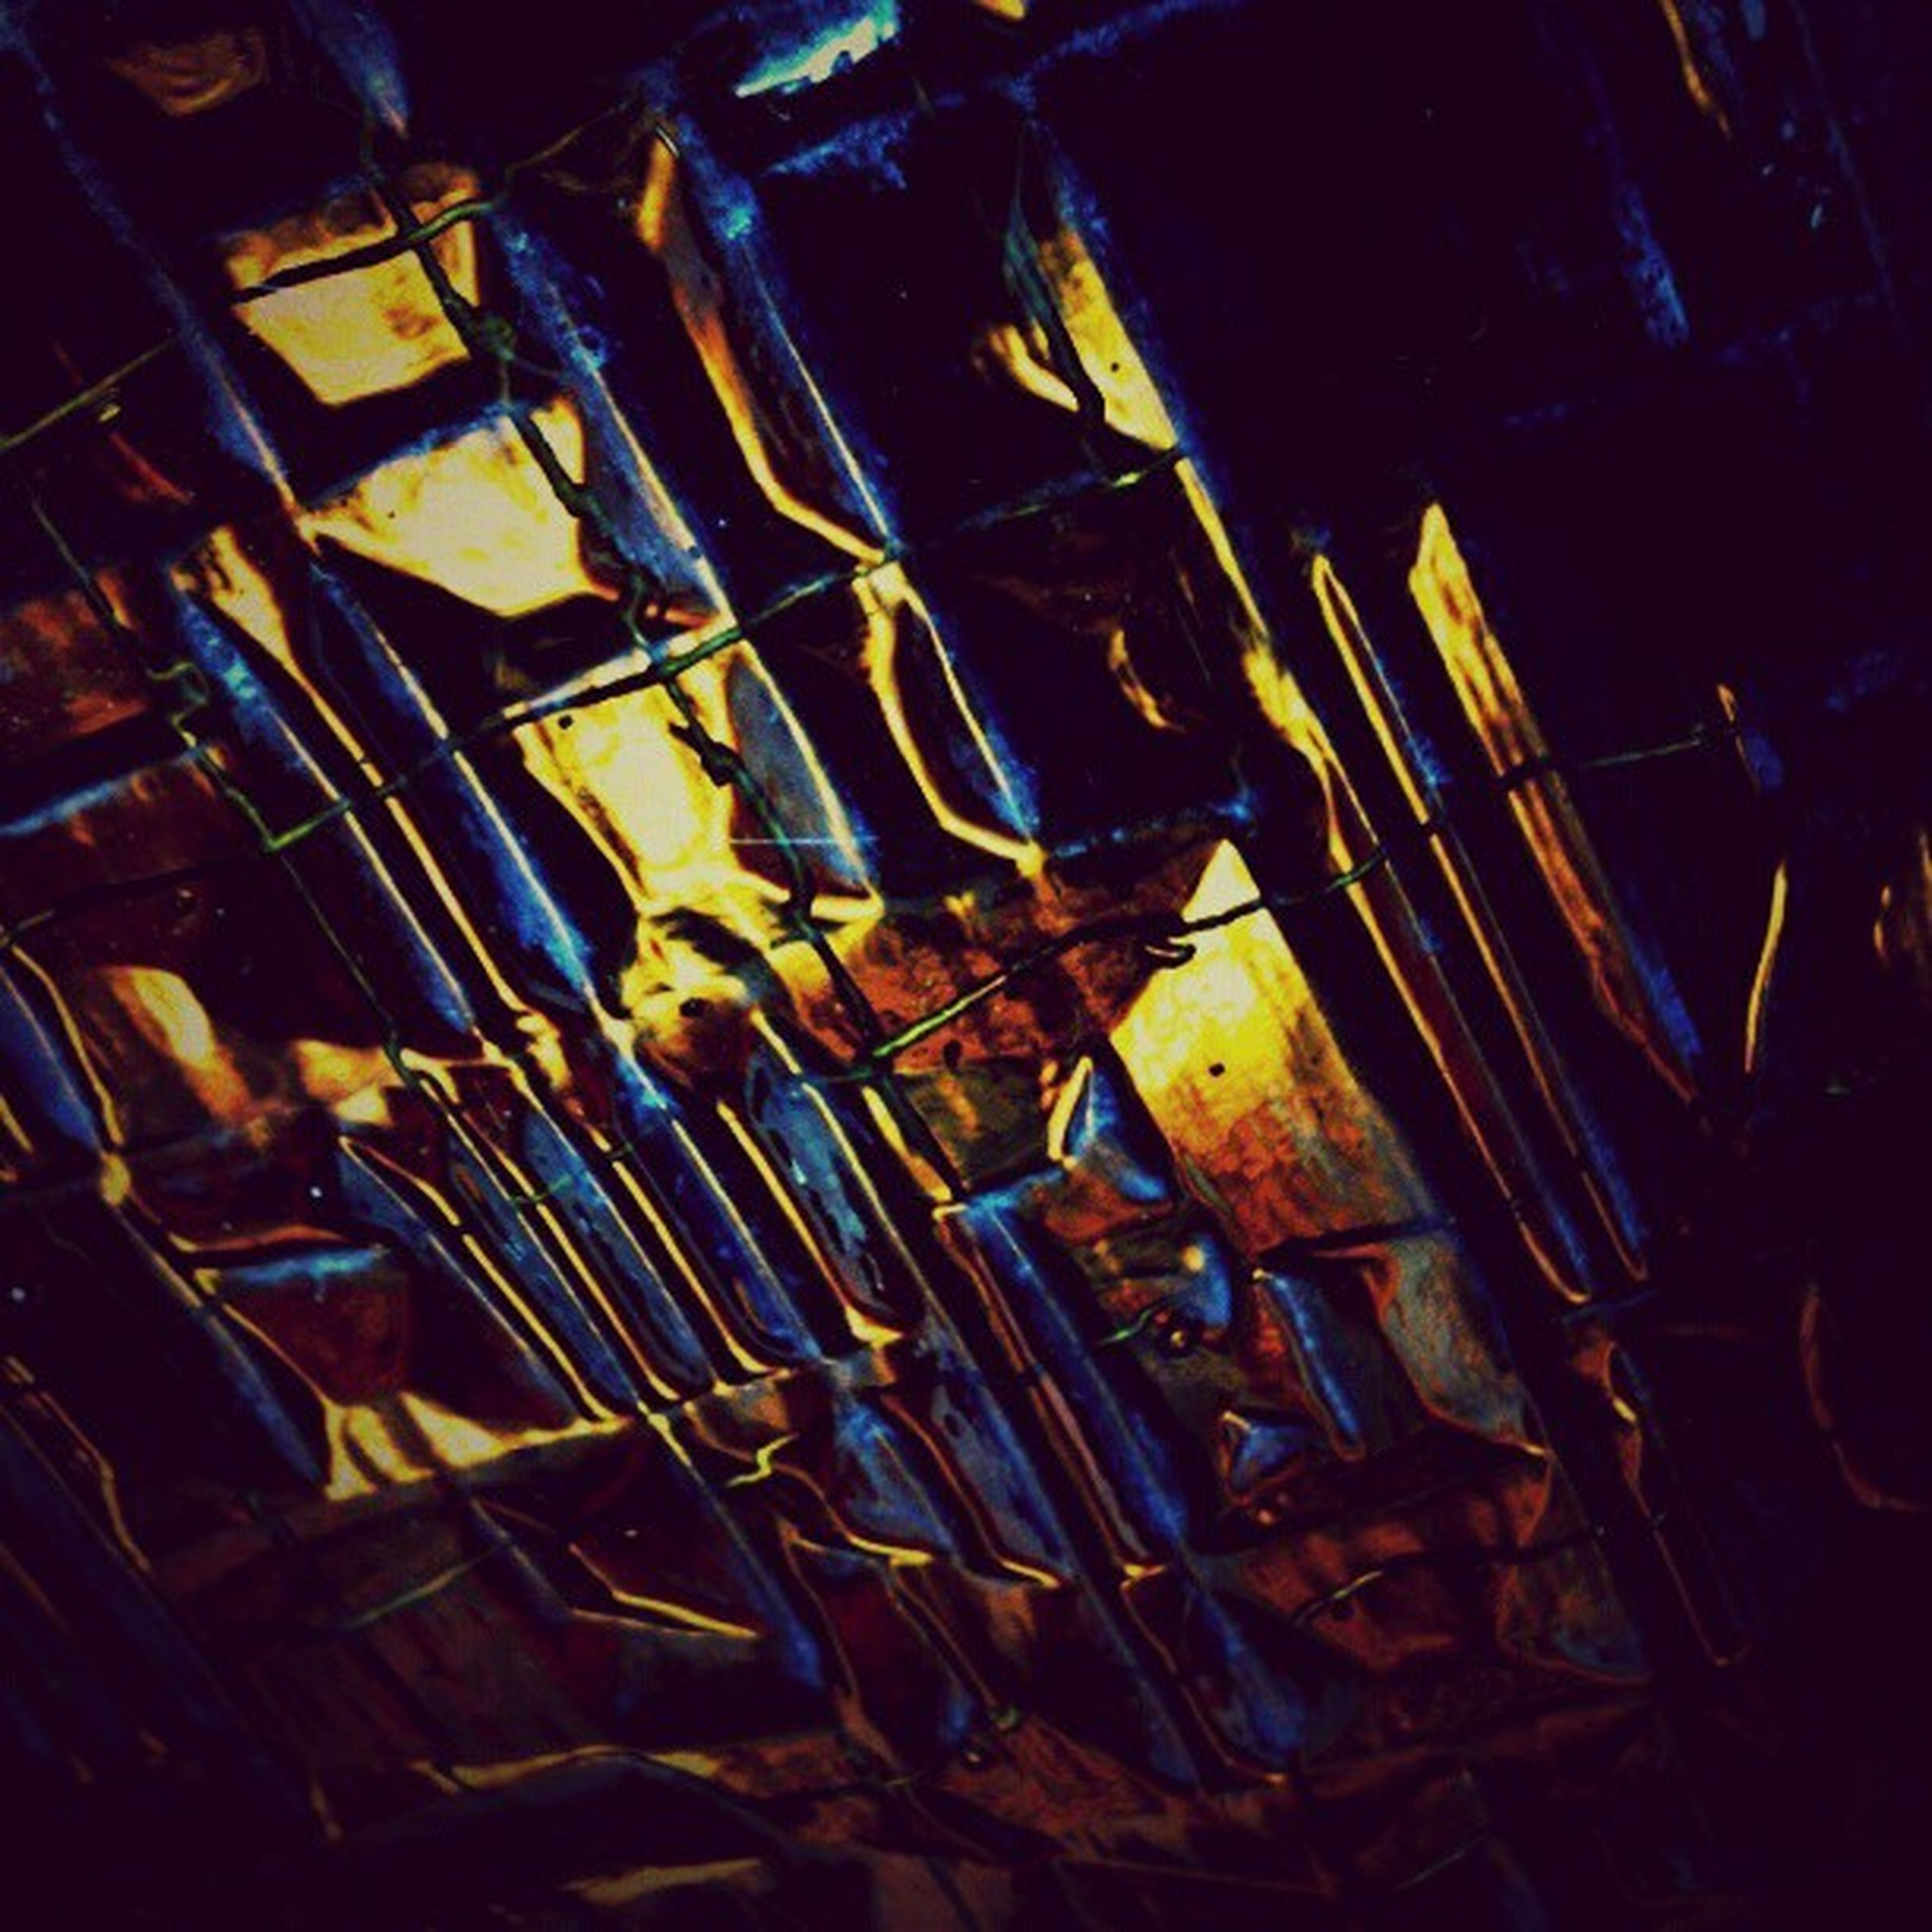 indoors, illuminated, night, metal, abandoned, close-up, still life, no people, old, wood - material, high angle view, lighting equipment, low angle view, large group of objects, light - natural phenomenon, damaged, pattern, abundance, obsolete, metallic